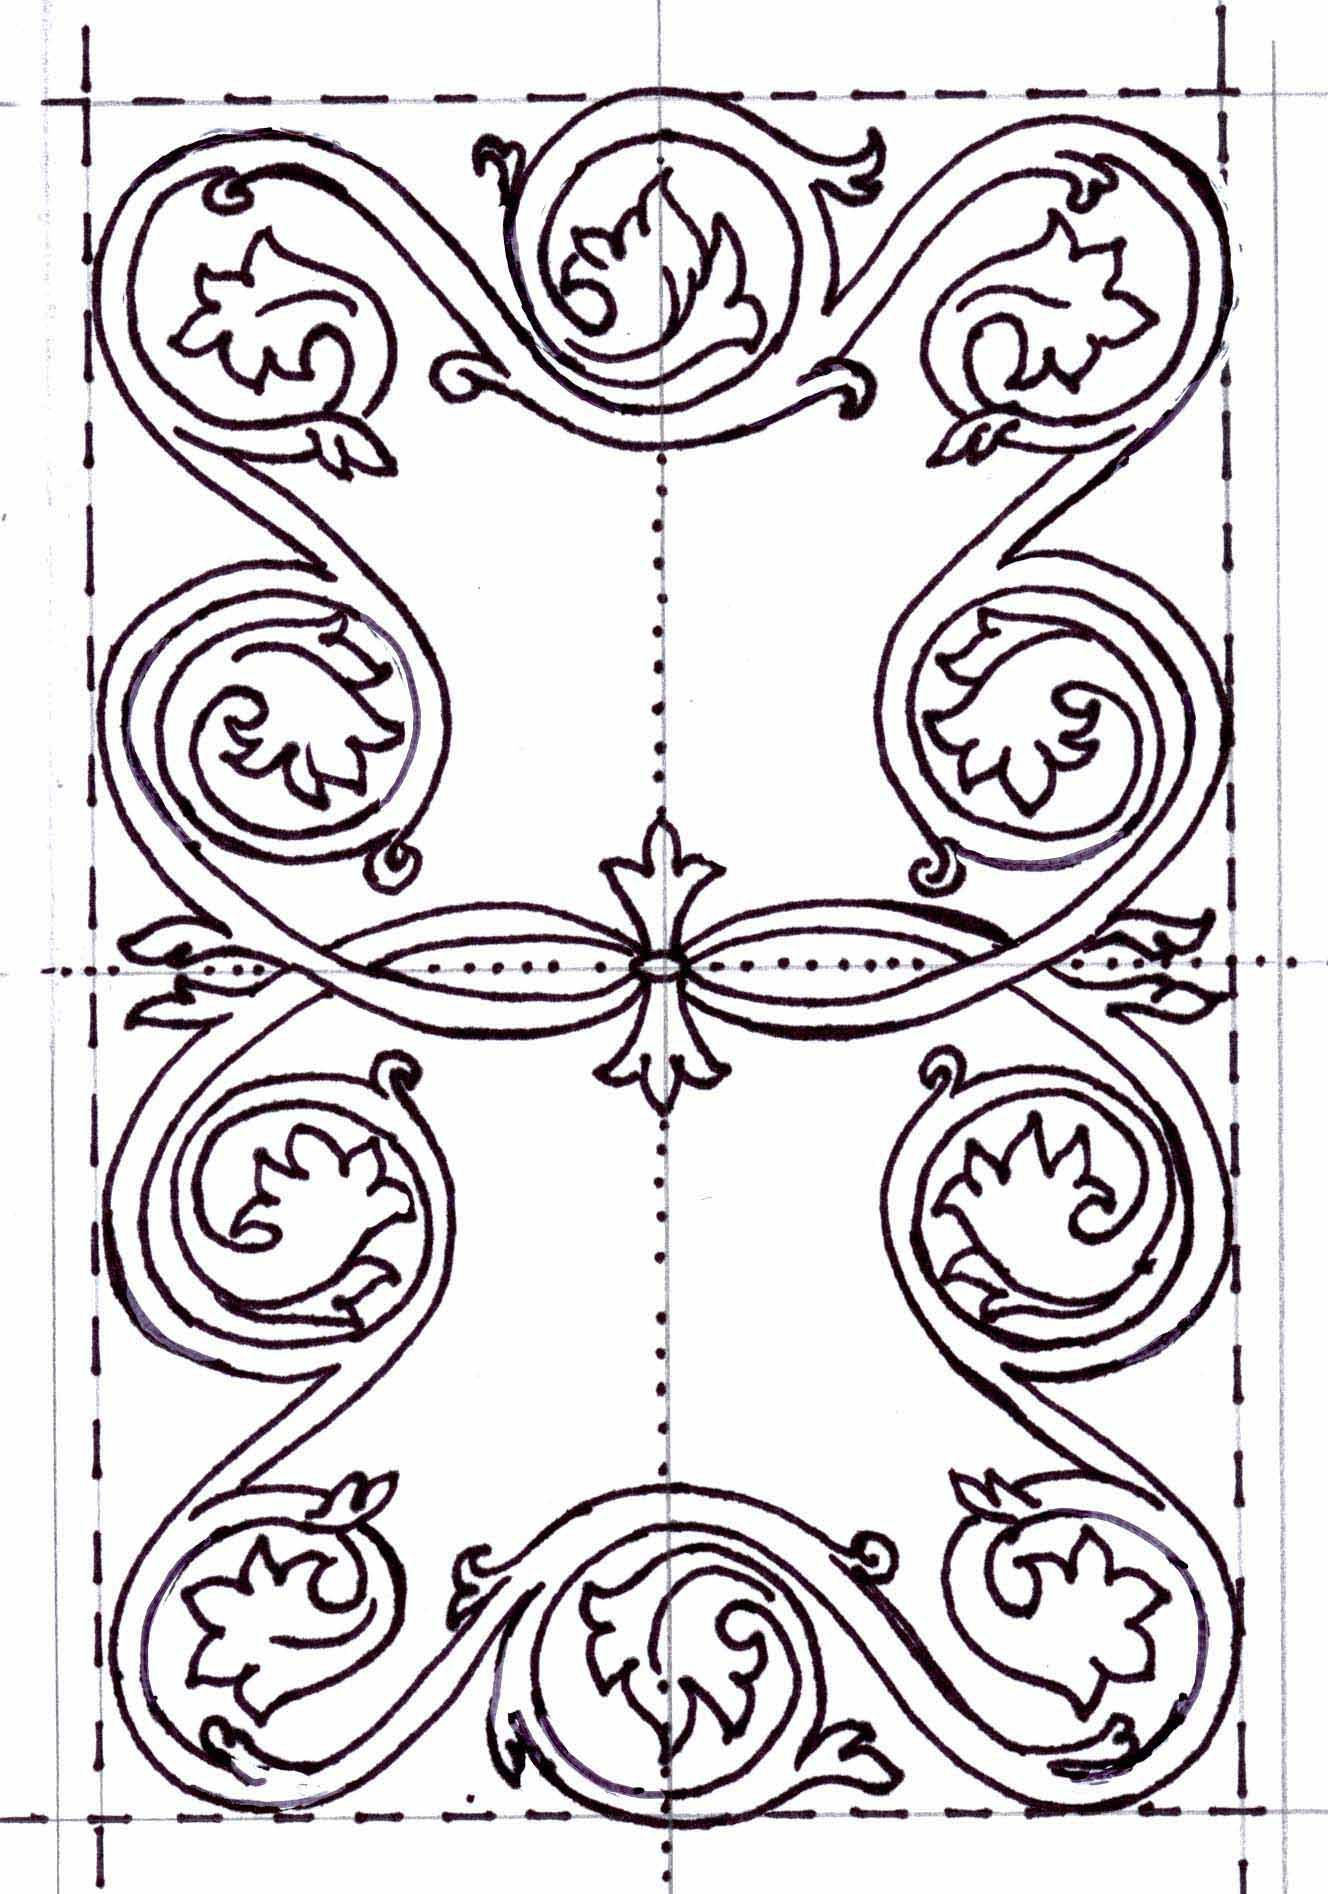 Girdle book embroidery pattern | spinning | Pinterest | Repujado ...